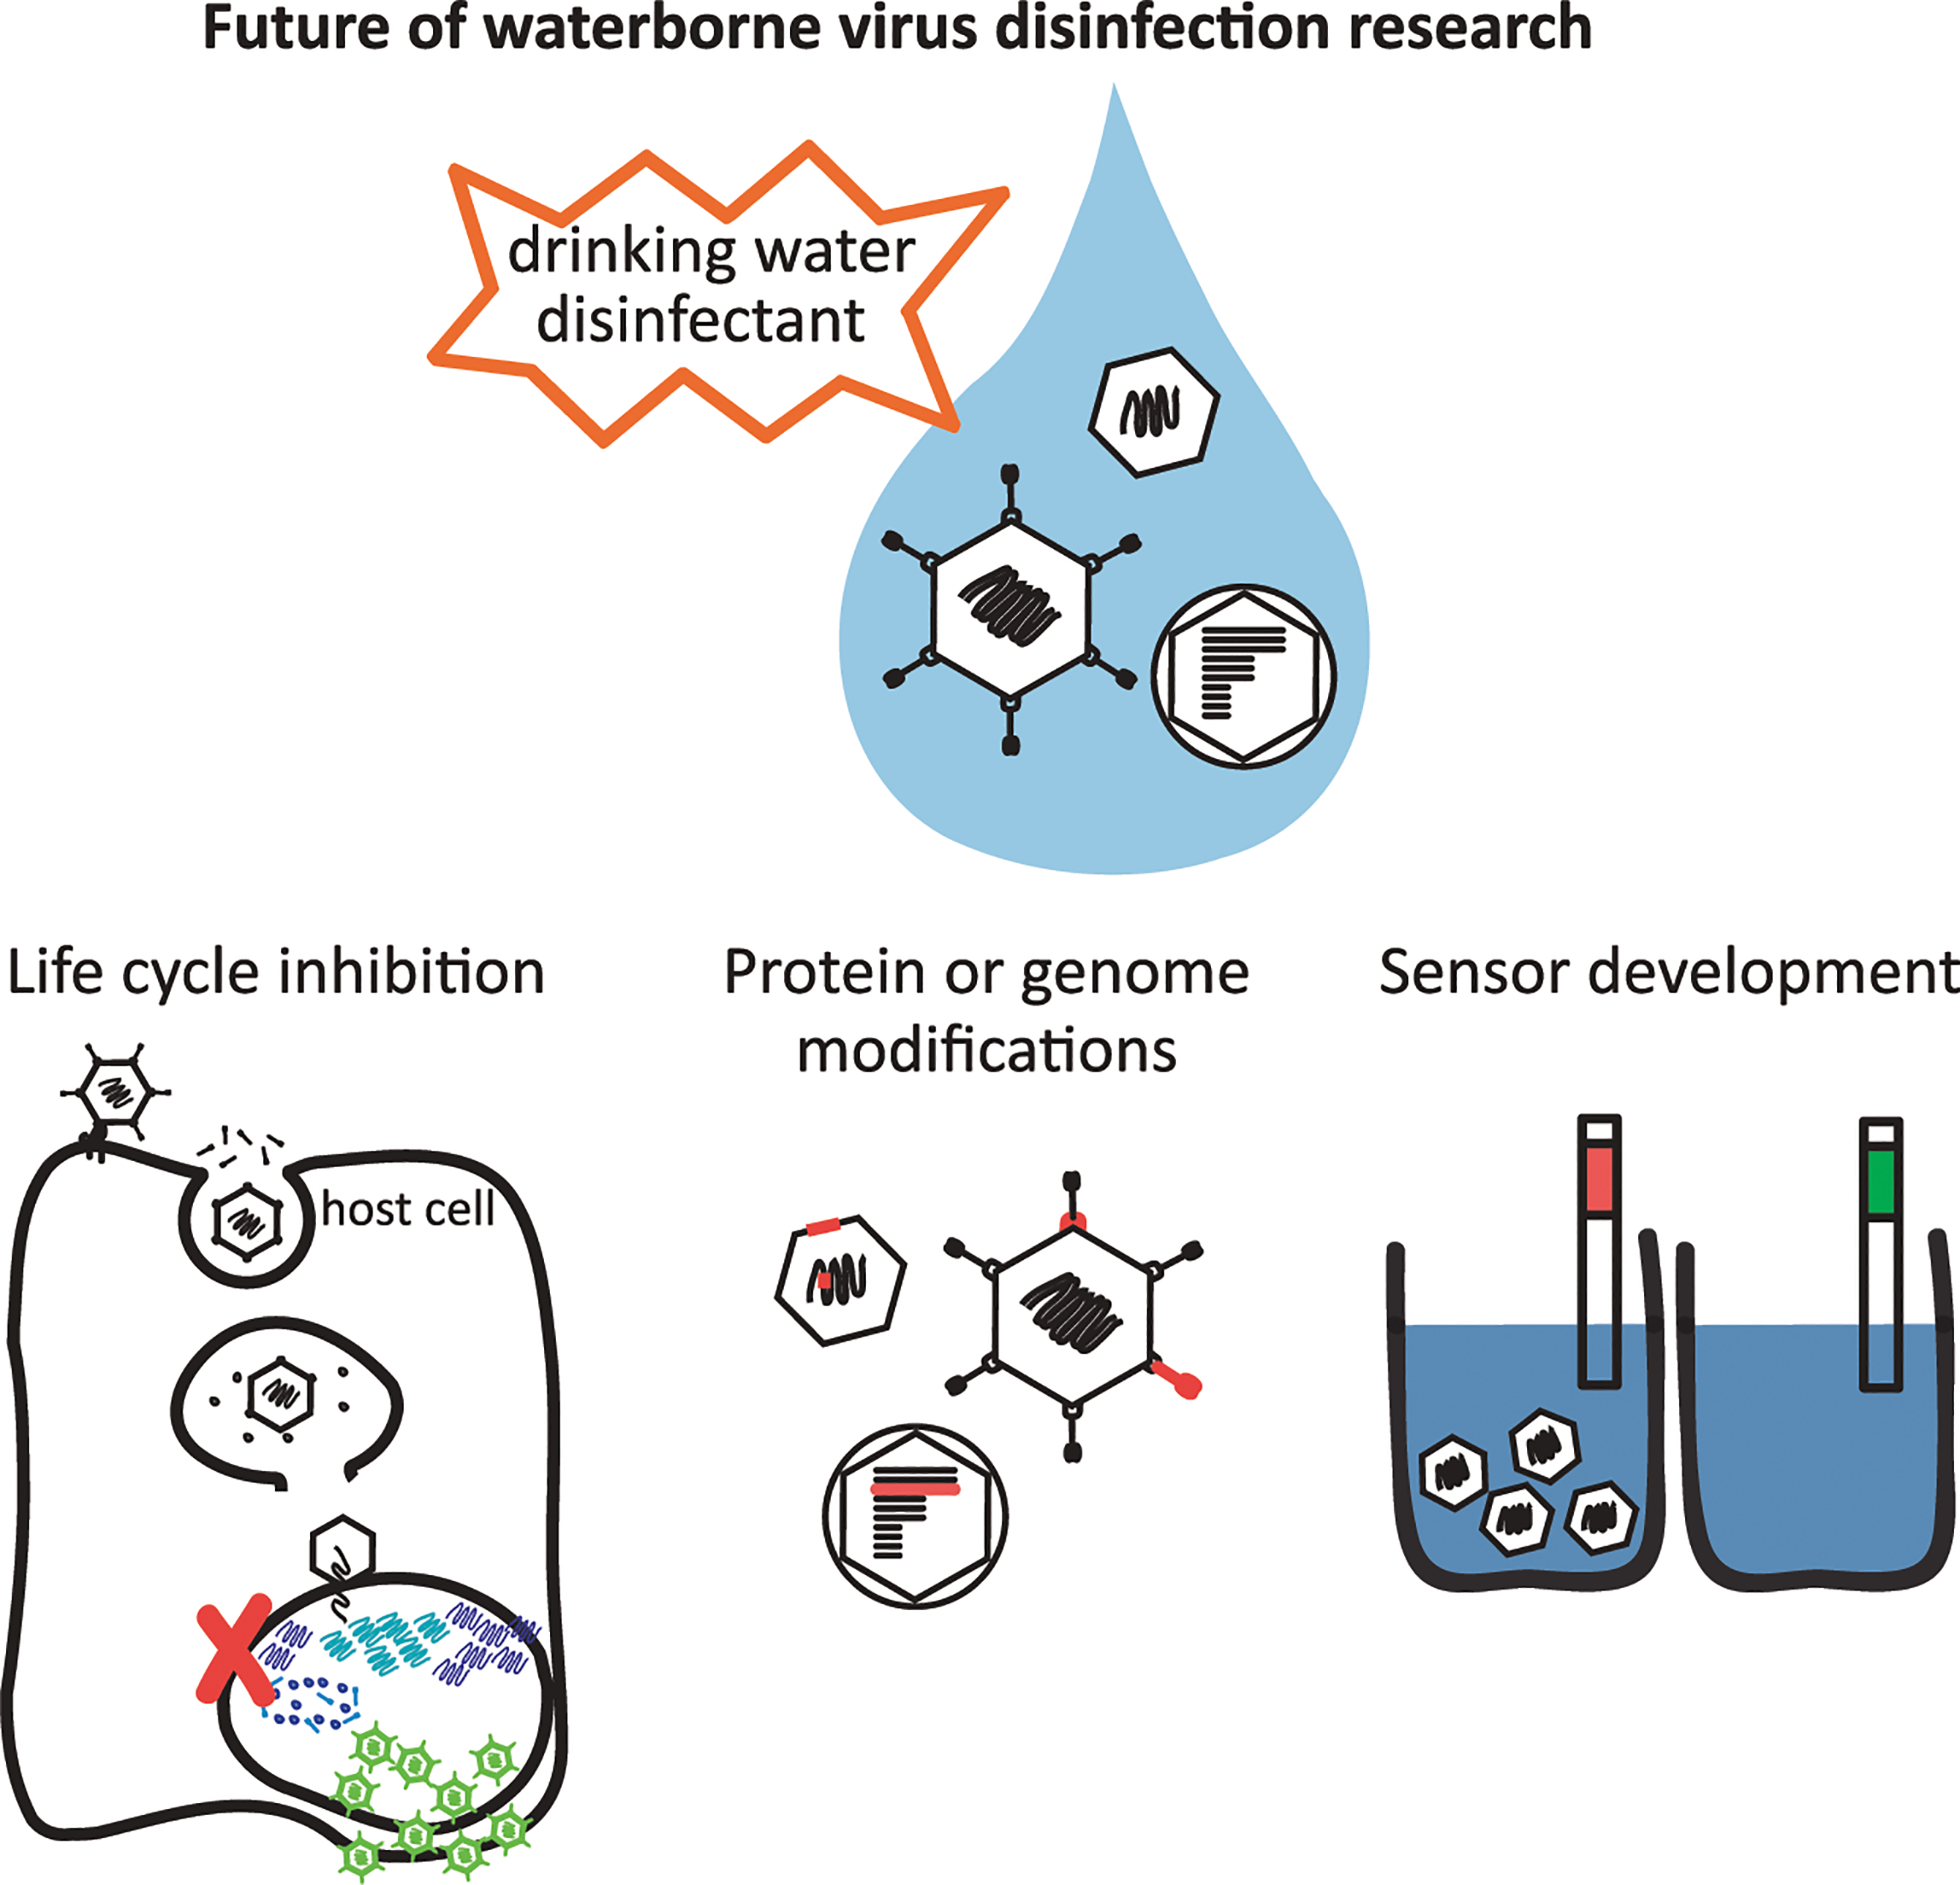 Future of waterborne virus research to provide safe drinking water globally.